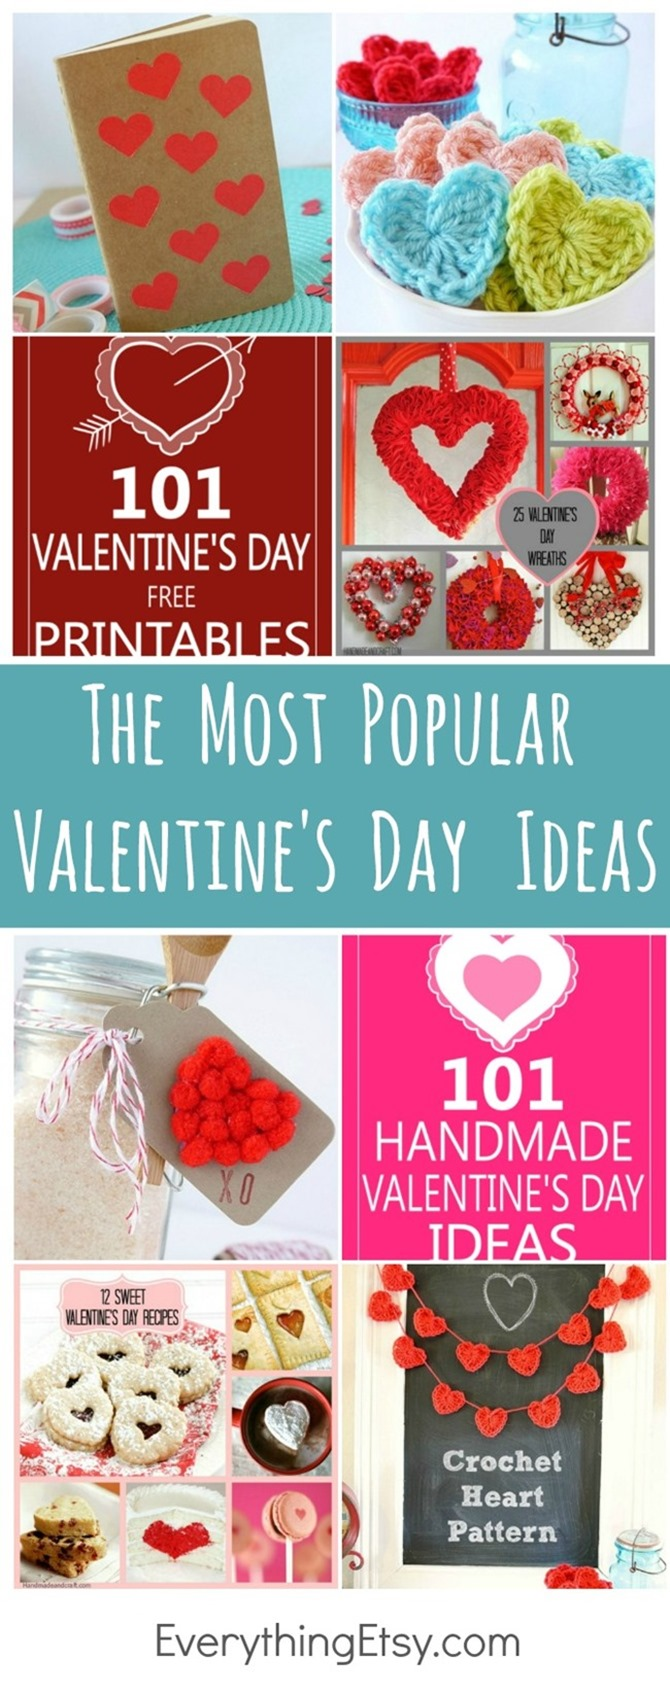 The Most Popular Valentine's Day Ideas and Printables